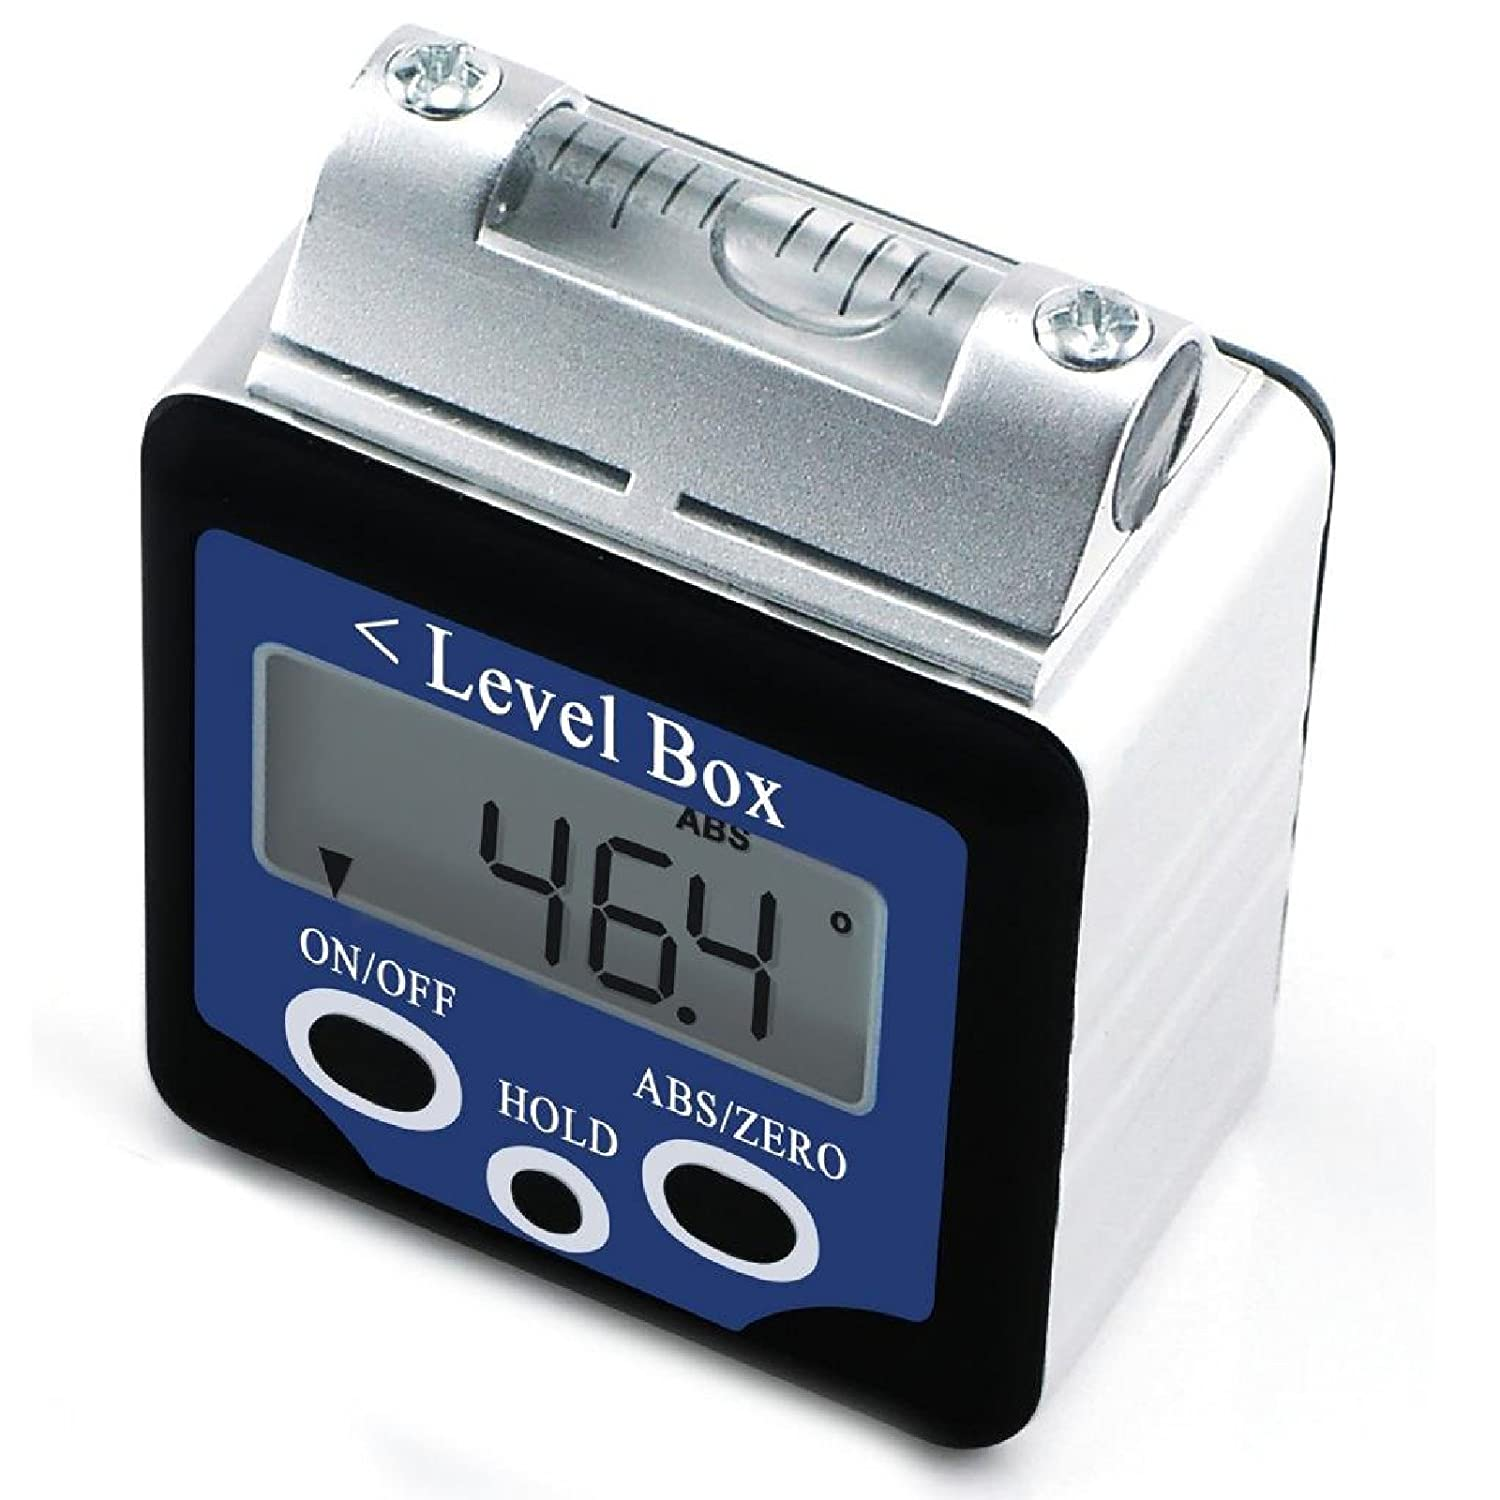 Digital 360° Spirit Level Angle Gauge Inclinometer w/Magnets Box Type +/-180 degree Accuracy 0.1 degree Bevel Box Level Angle Finder Large LCD Display Gain Express Holdings Ltd. AG-02LB